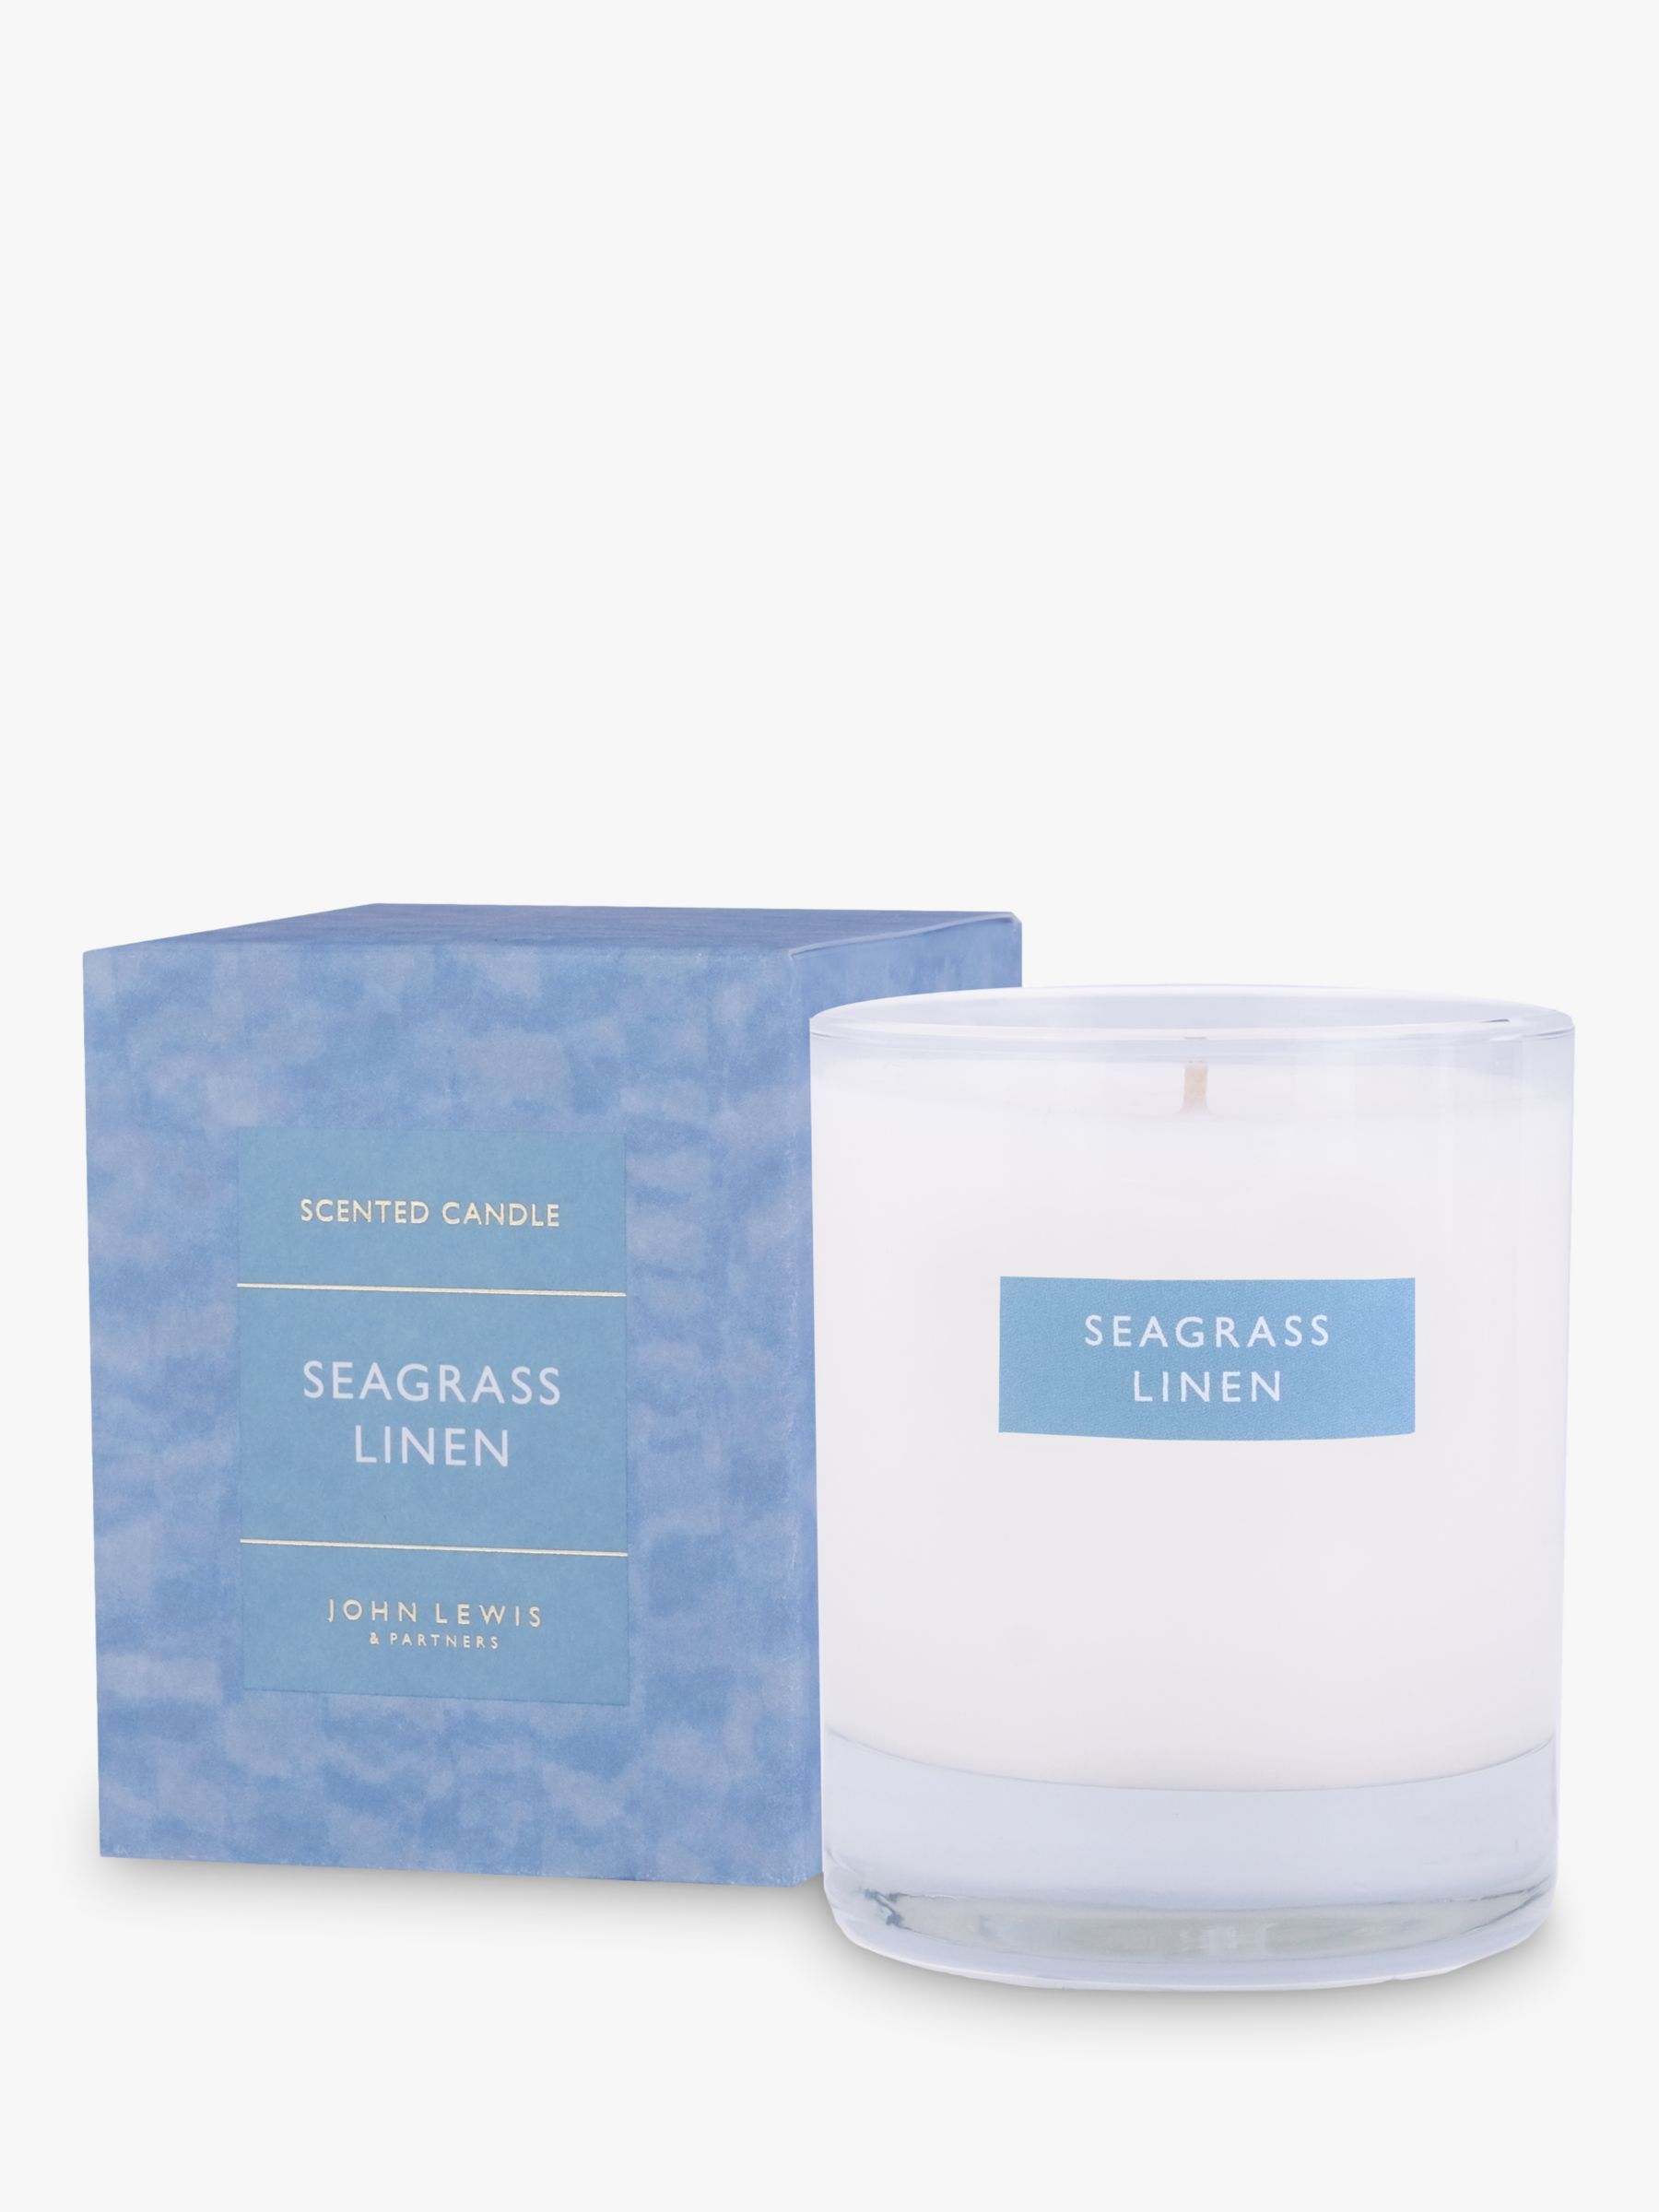 Buy John Lewis & Partners Seagrass Linen Scented Candle, 180g Online at www.retrievedmagnetic.com